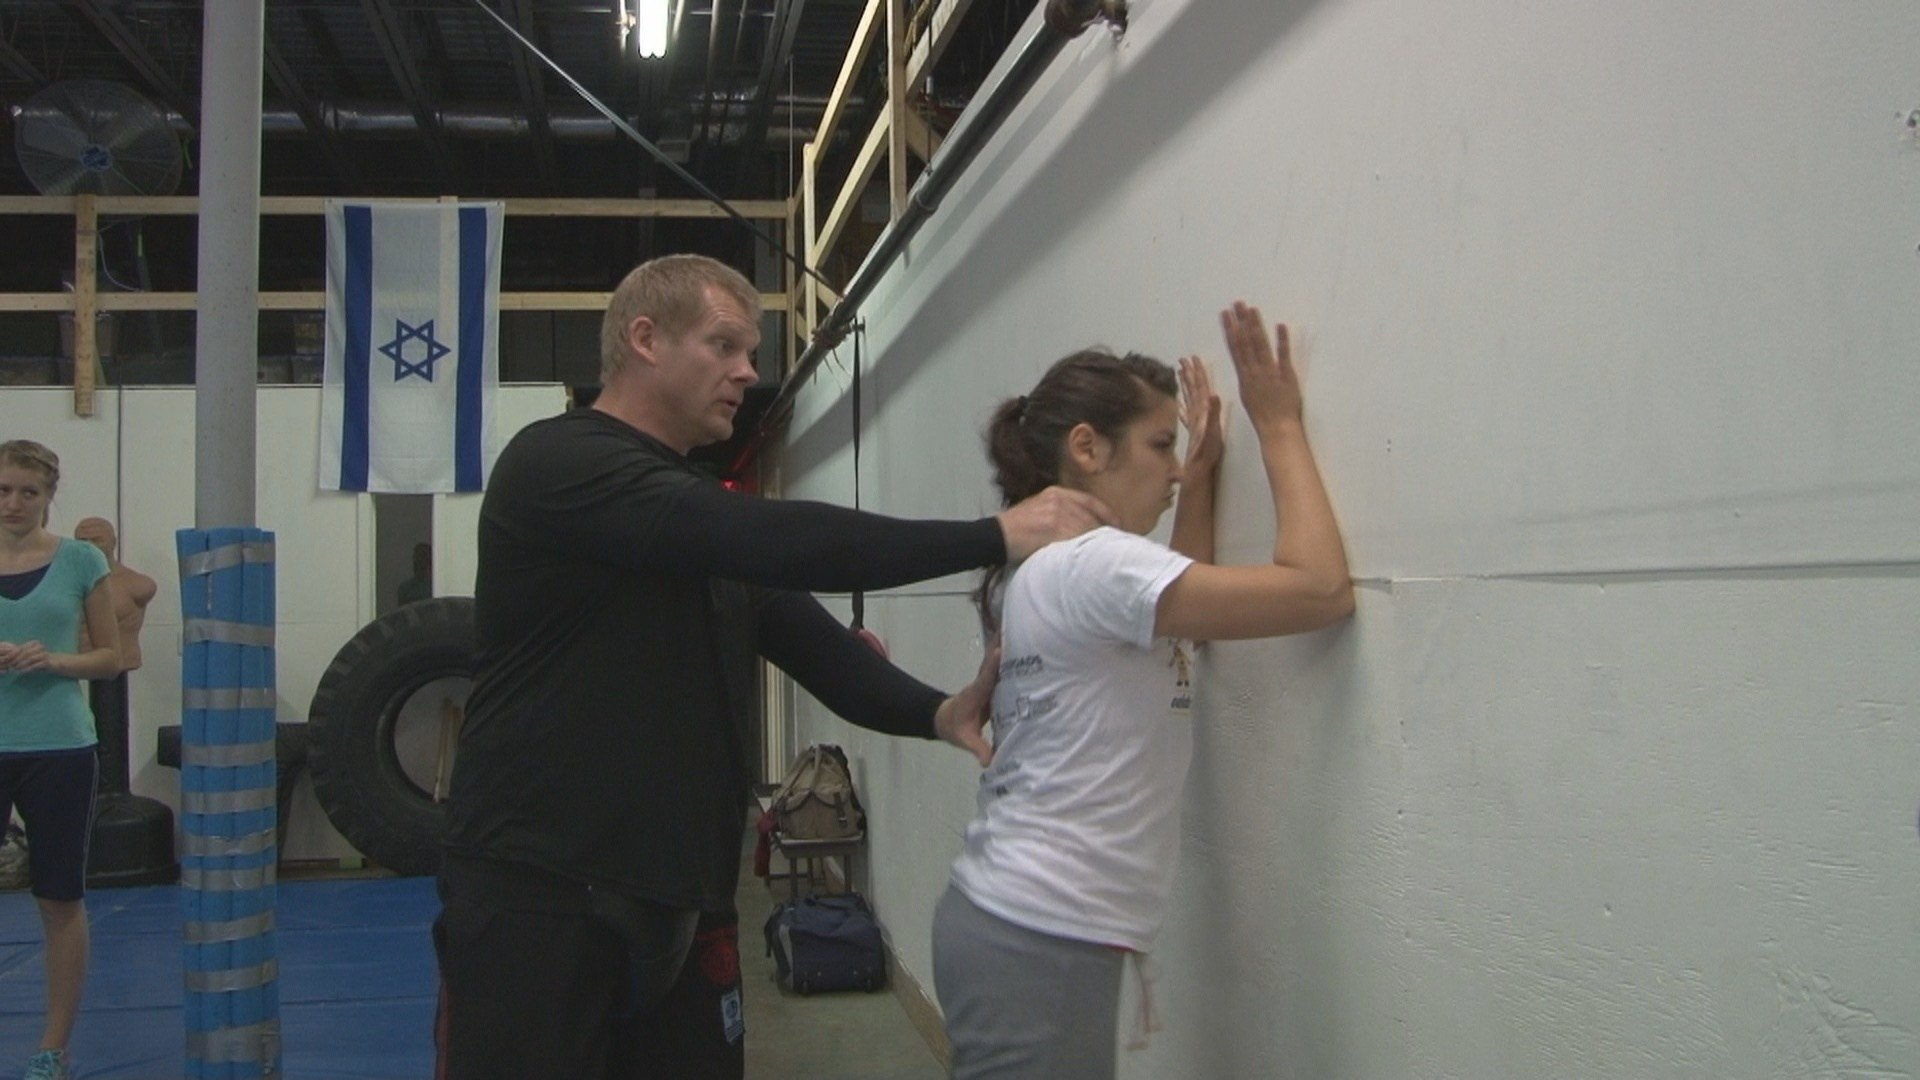 Krav Maga instructor, John Woods, teaches a student how to escape an attack.